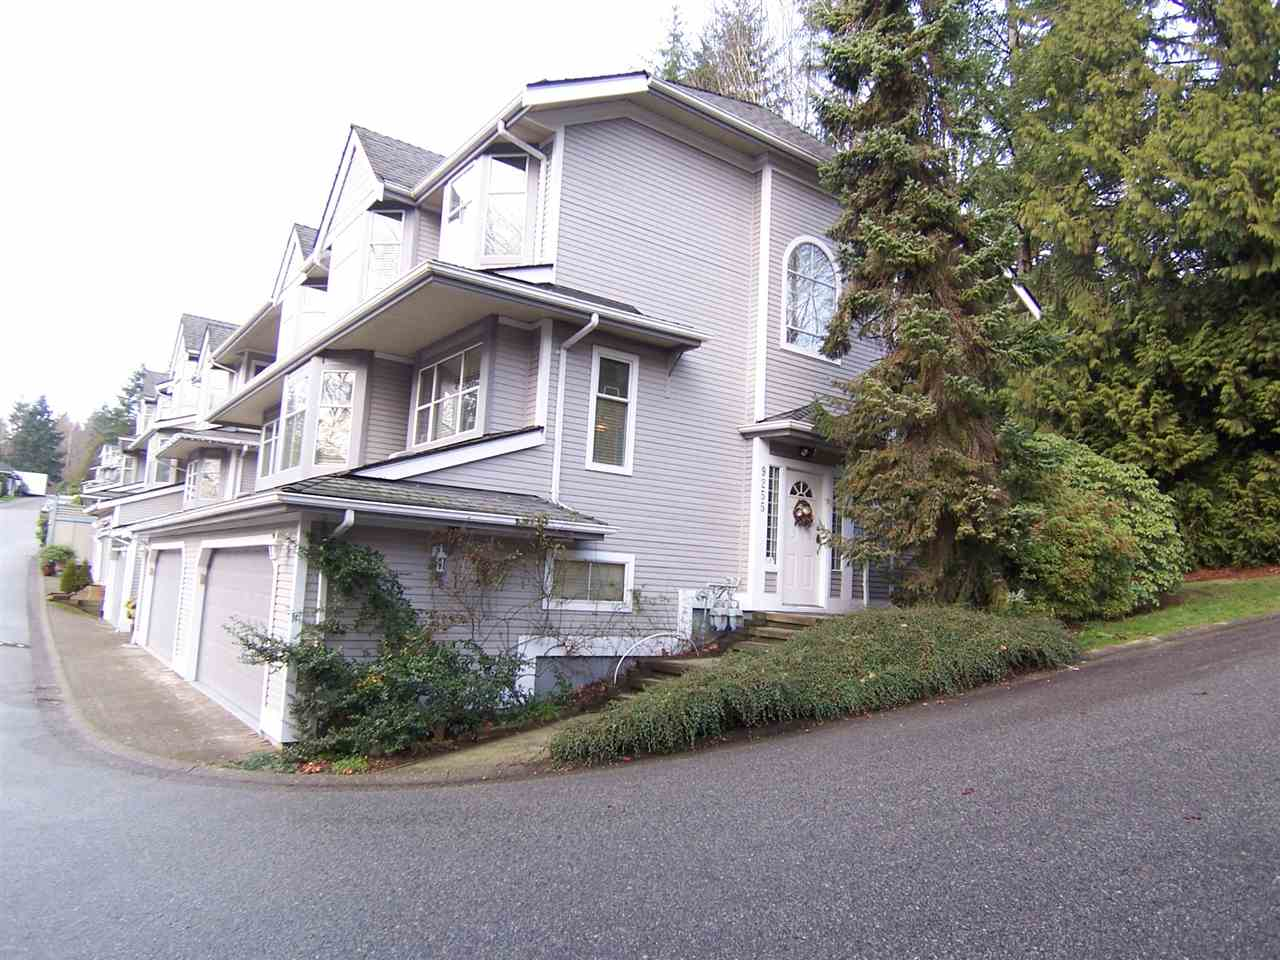 Beautifully updated 4 bedroom, 3 bathroom, corner unit town home. Features include granite counter-tops in kitchen and bathrooms, crown moulding throughout, hardwood flooring, and much more. Private, treed setting out back. Close to bus or 5 minute drive to Lougheed Towne Center.